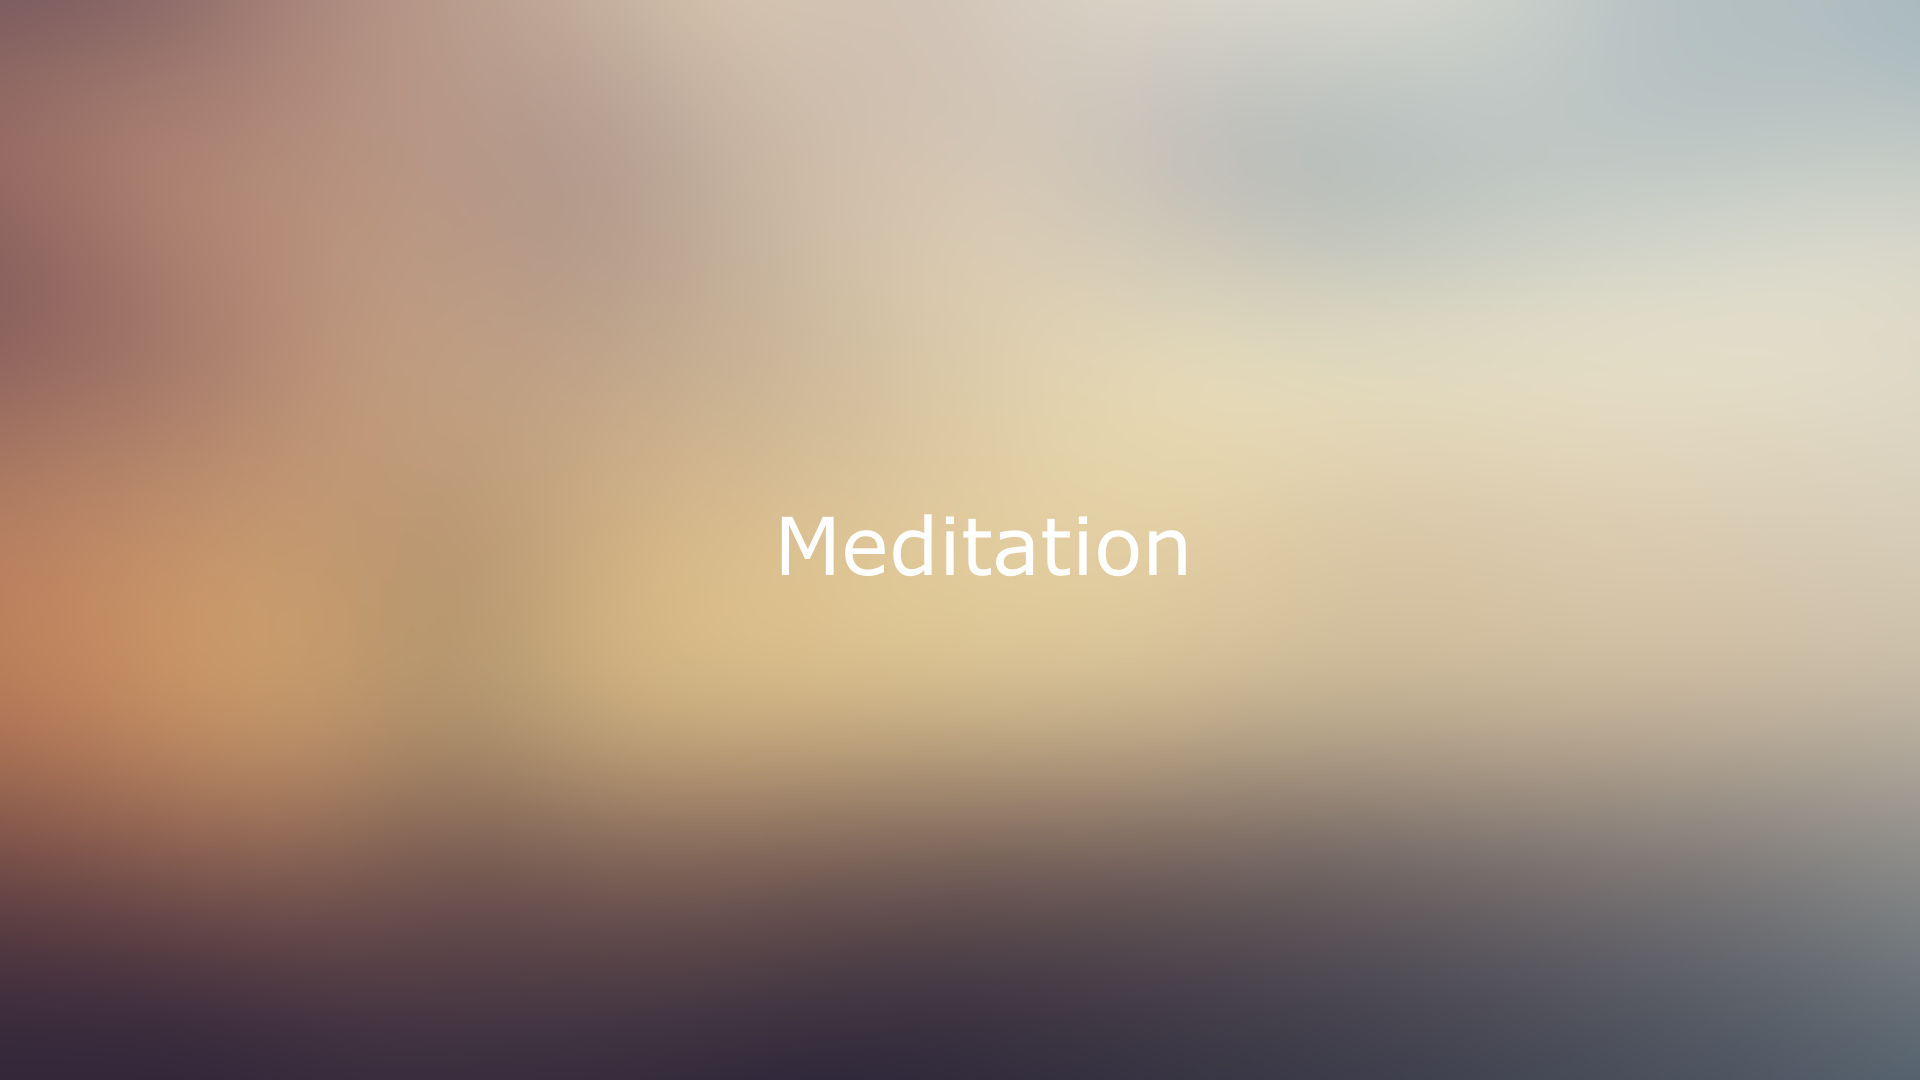 brownish background behind meditation text